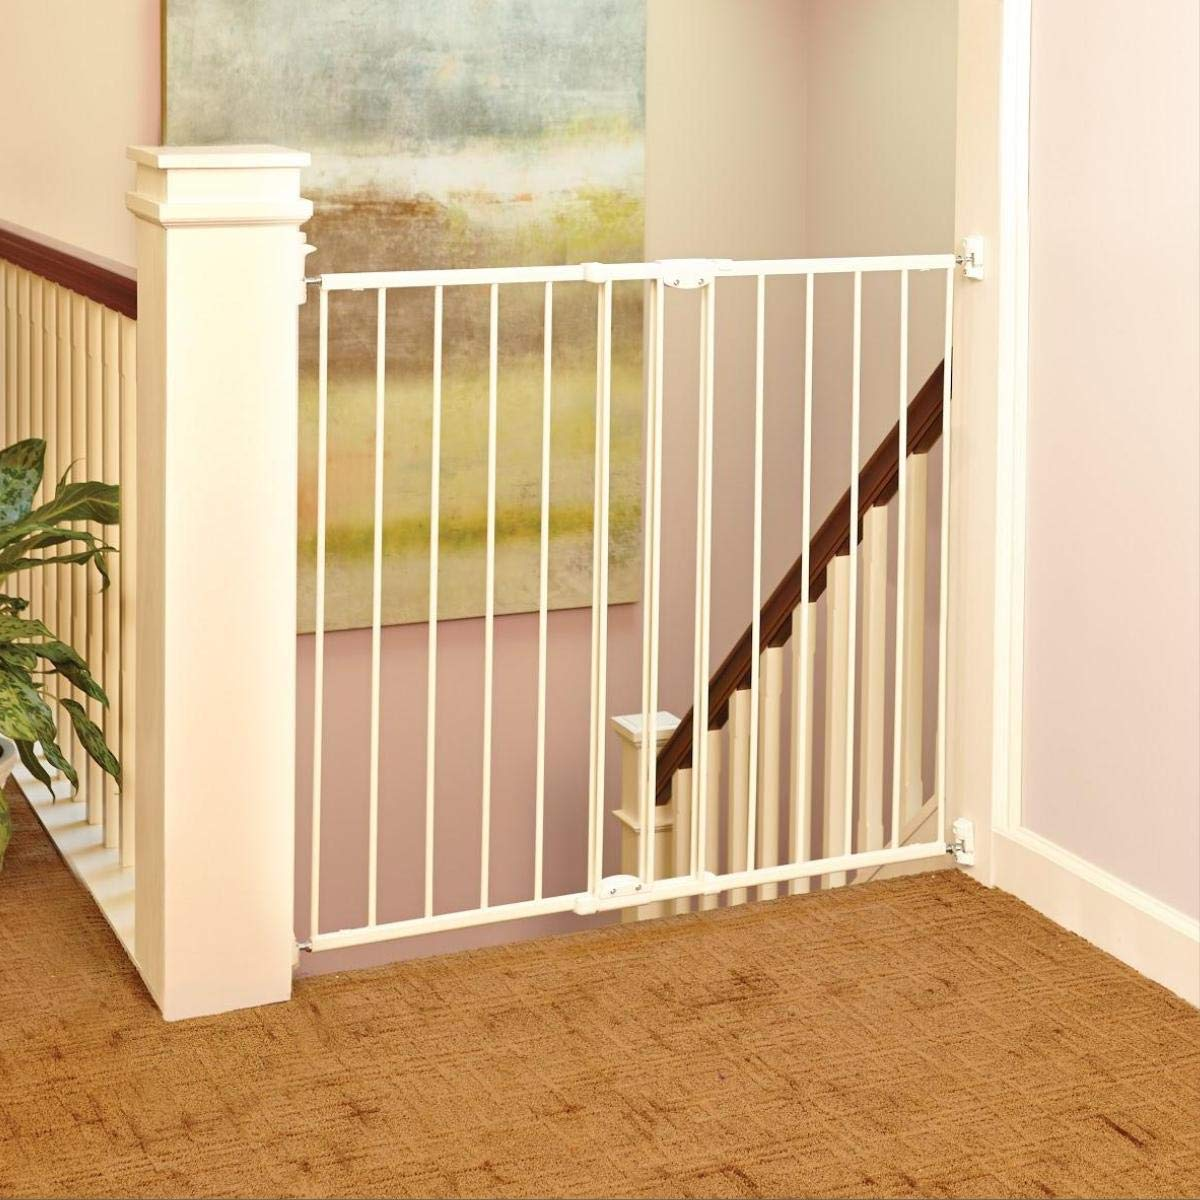 North States 47.85 Tall Easy Swing and Lock Baby Gate Ideal for stairways, swings to self-lock. Hardware mount. Fits 28.68 -47.85 wide 36 tall, Soft White